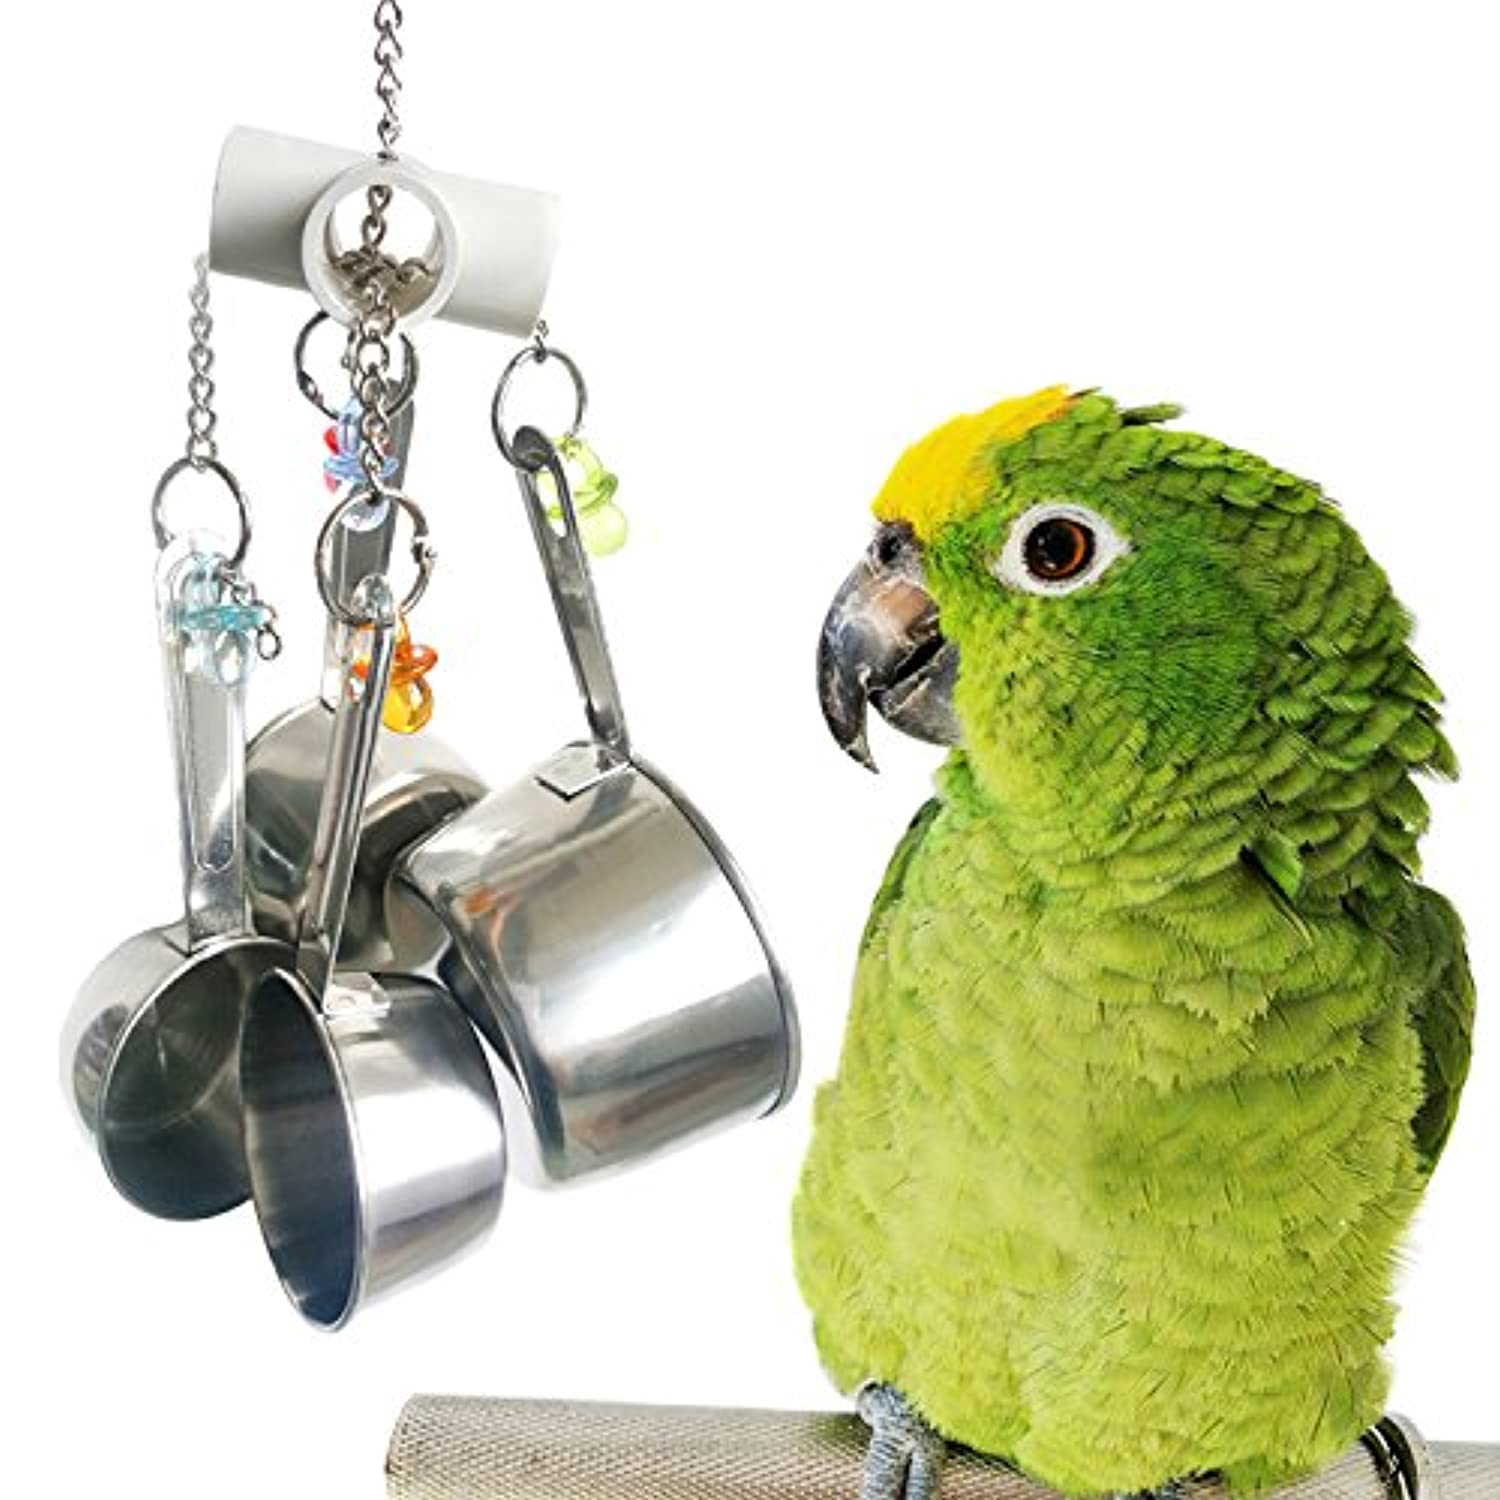 Classier: Buy BWOGUE BWOGUE 5pcs Bird Parrot Toys Hanging Bell Pet Bird Cage Hammock Swing Toy Hanging Toy for Small Parakeets Cockatiels, Conures, Macaws, Parrots, Love Birds, Finches